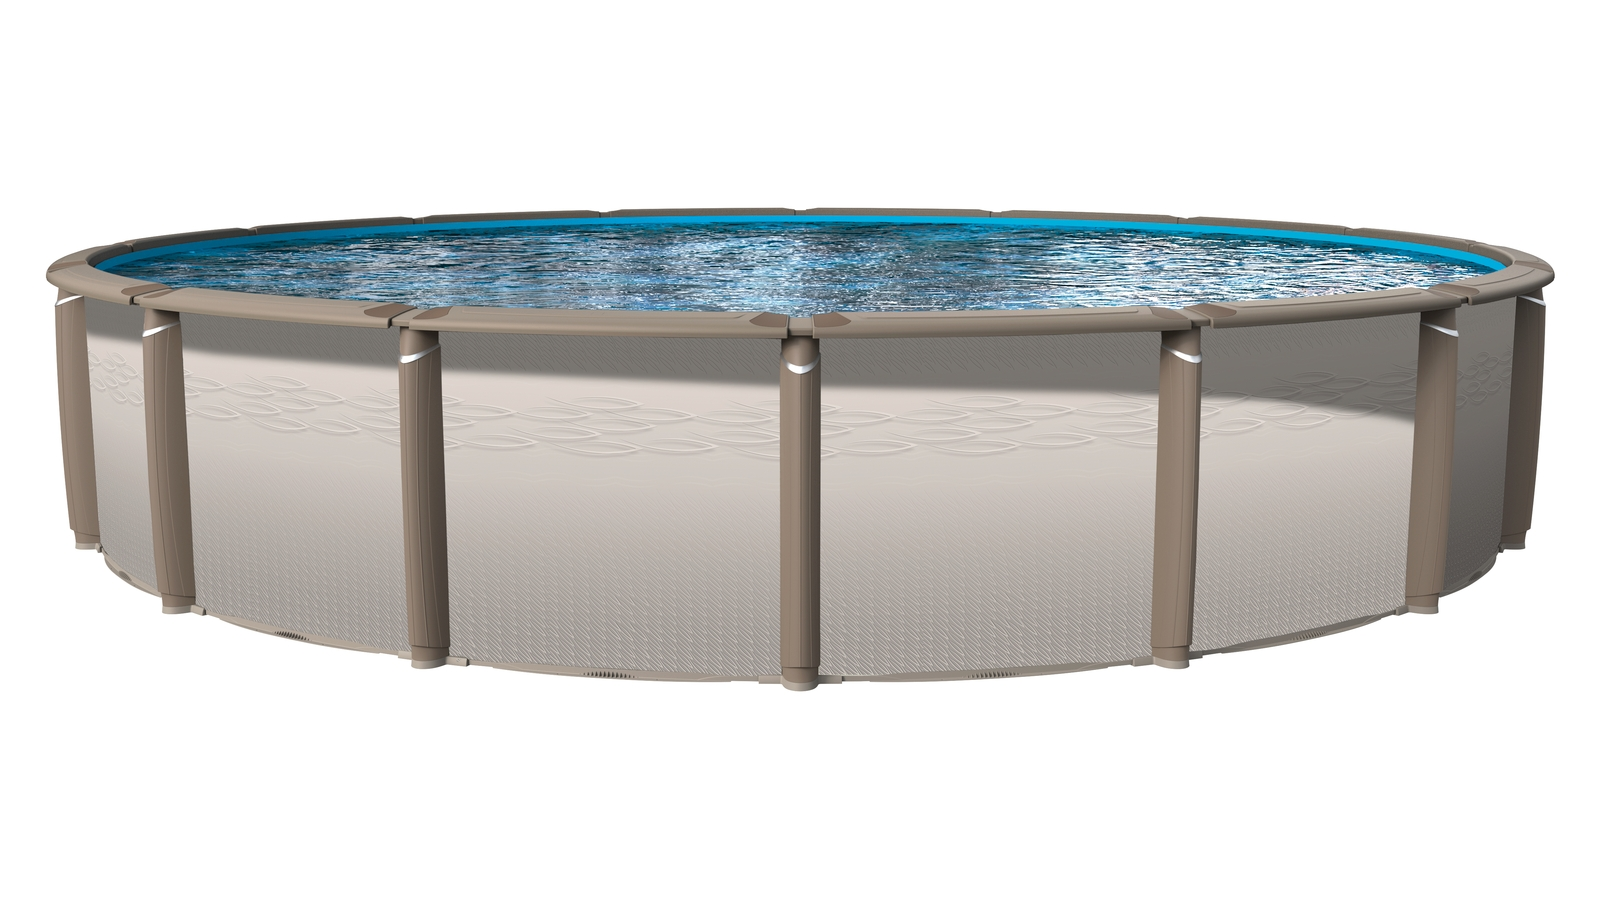 Revelation Round Above Ground Pool – Above Ground Pools – Swimming Pools Throughout Popular Krevco Patio Umbrellas (View 16 of 20)